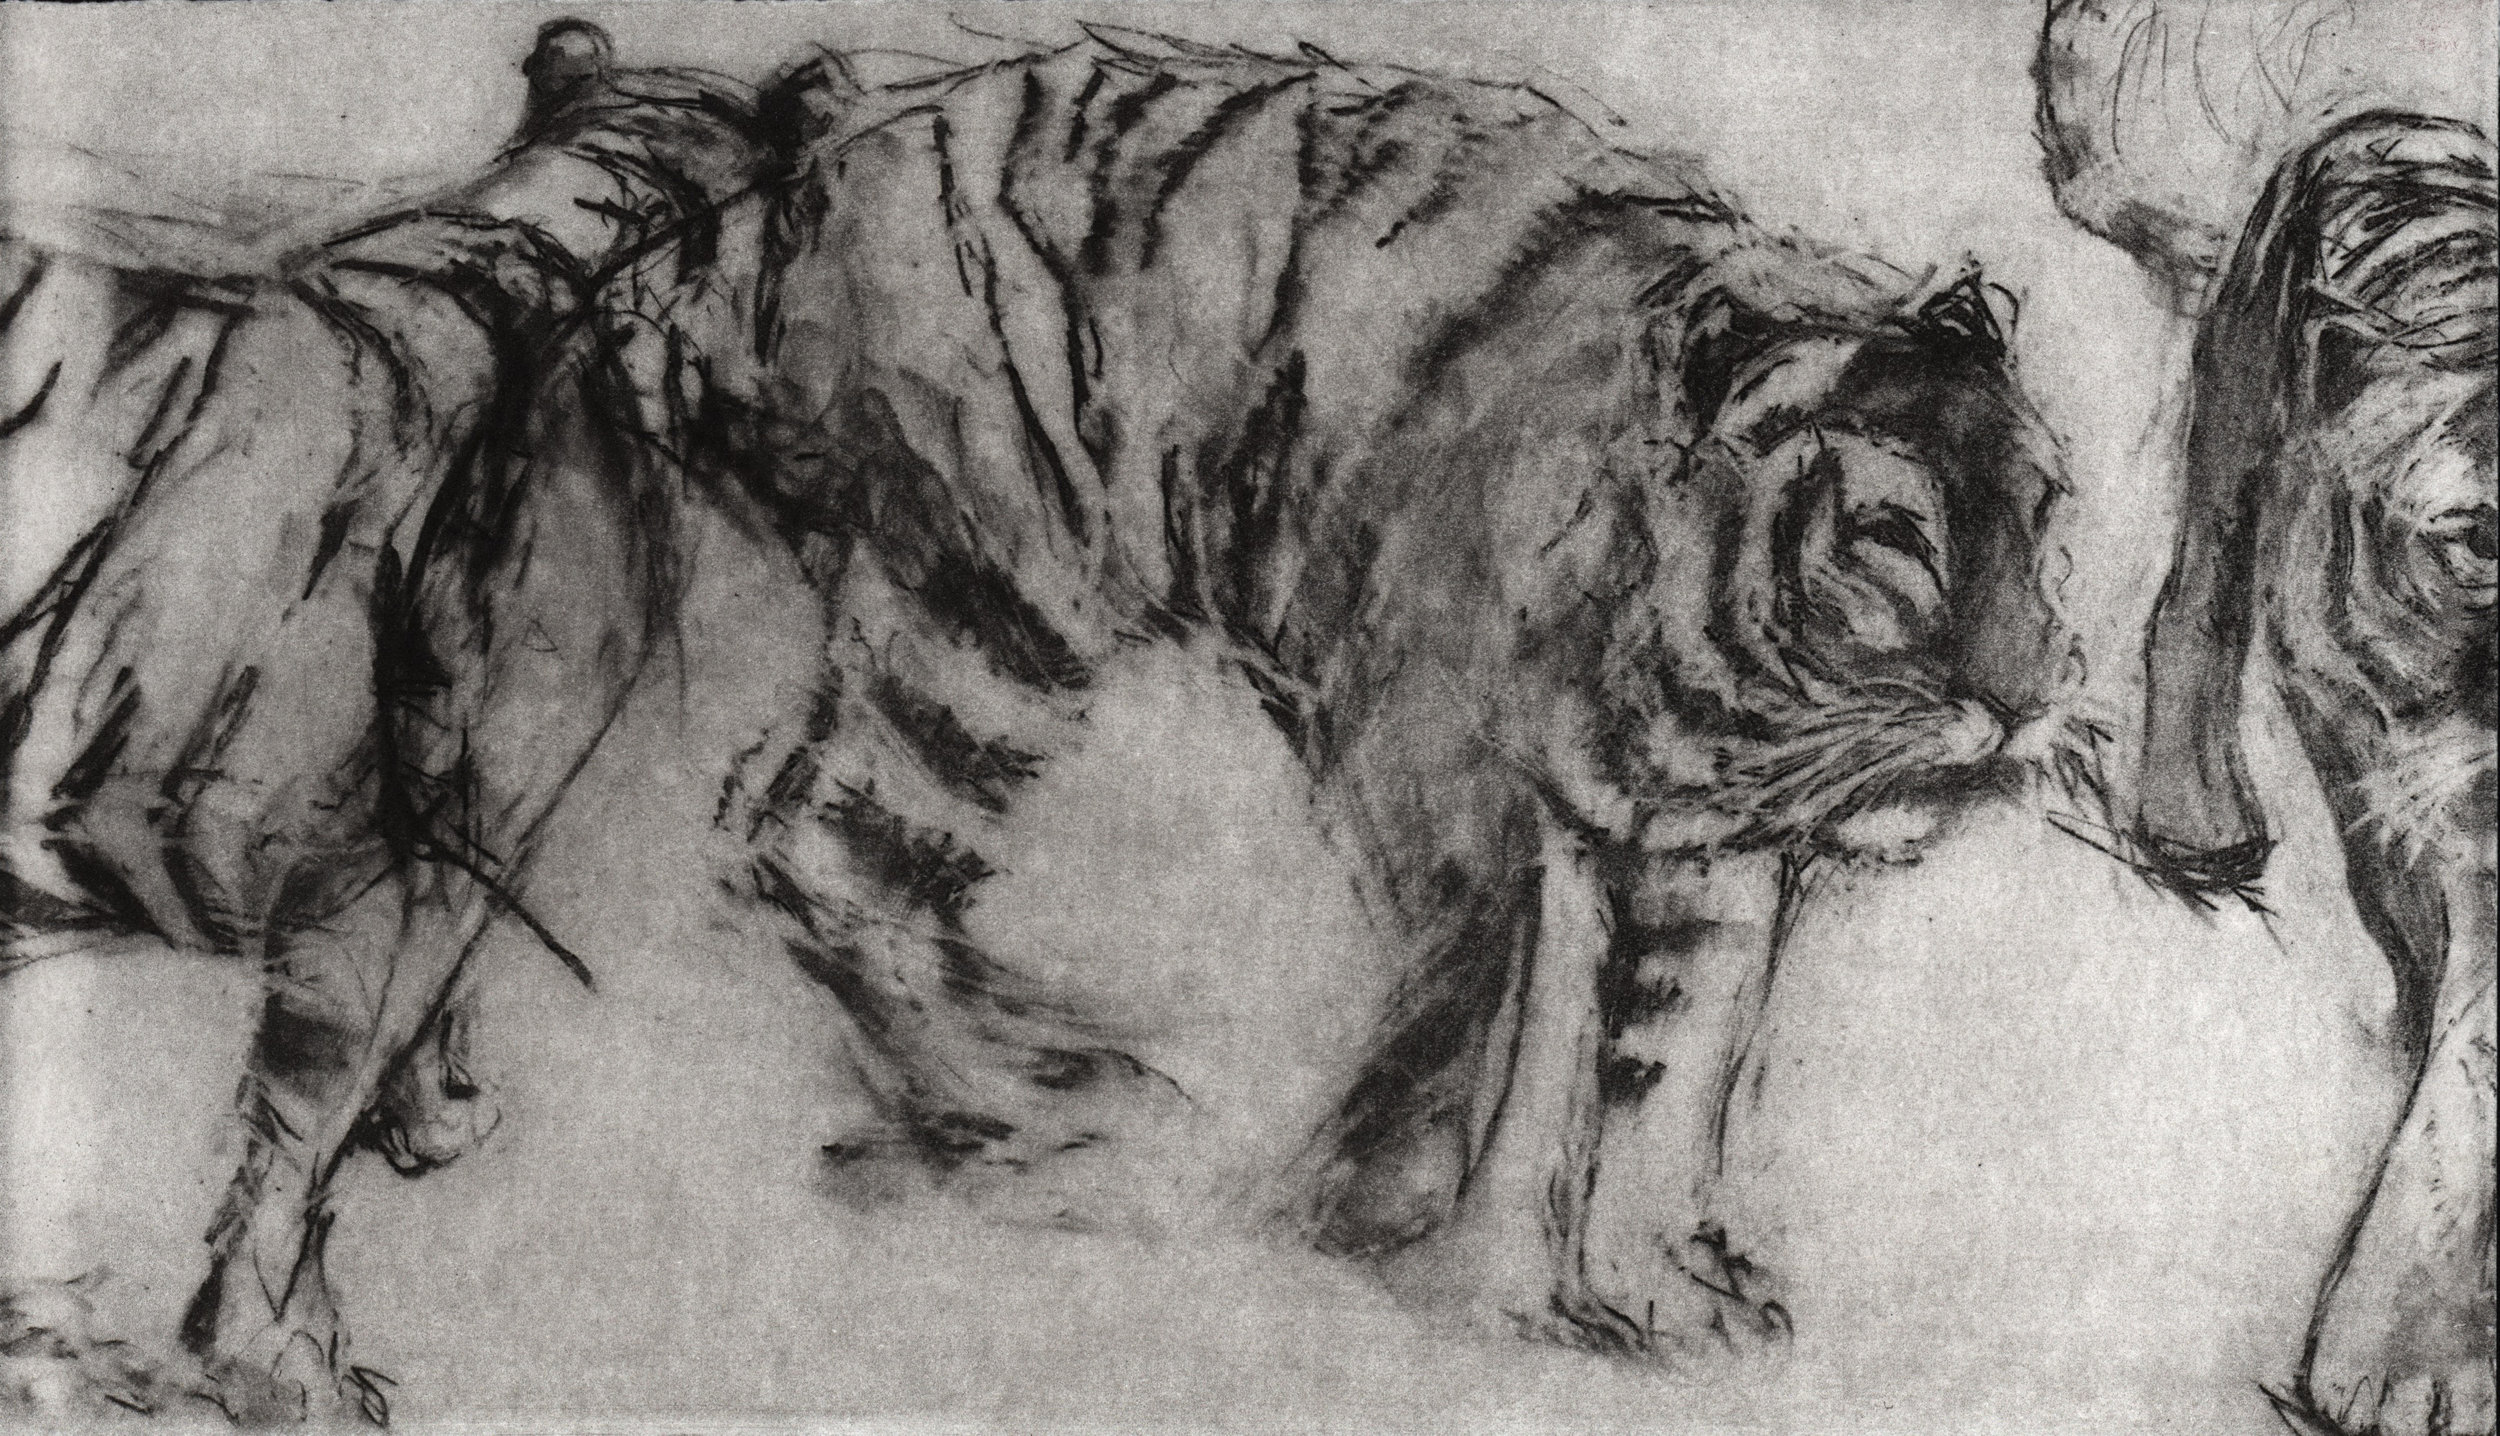 Pacing Tiger III  (detail), Photopolymer etching, Louise Pallister